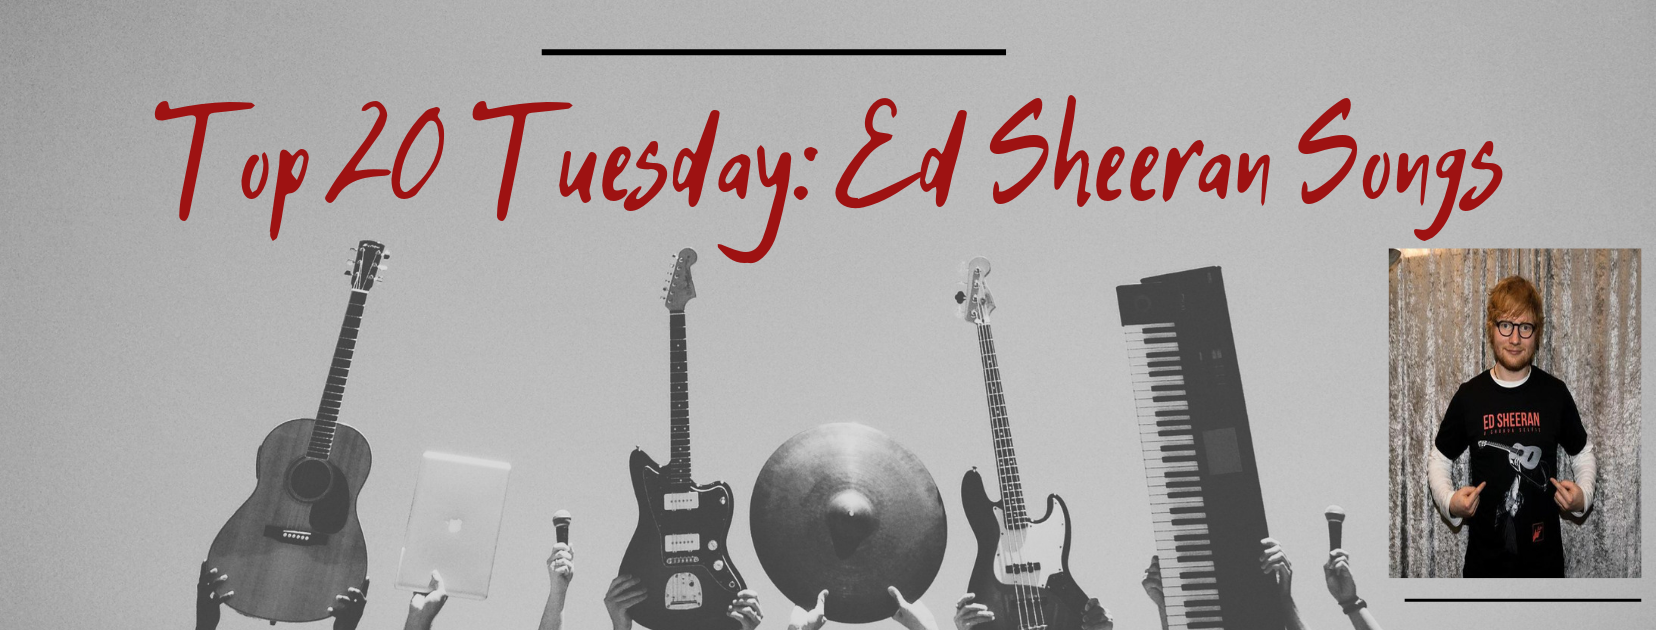 Top 20 Tuesday: Ed Sheeran Songs